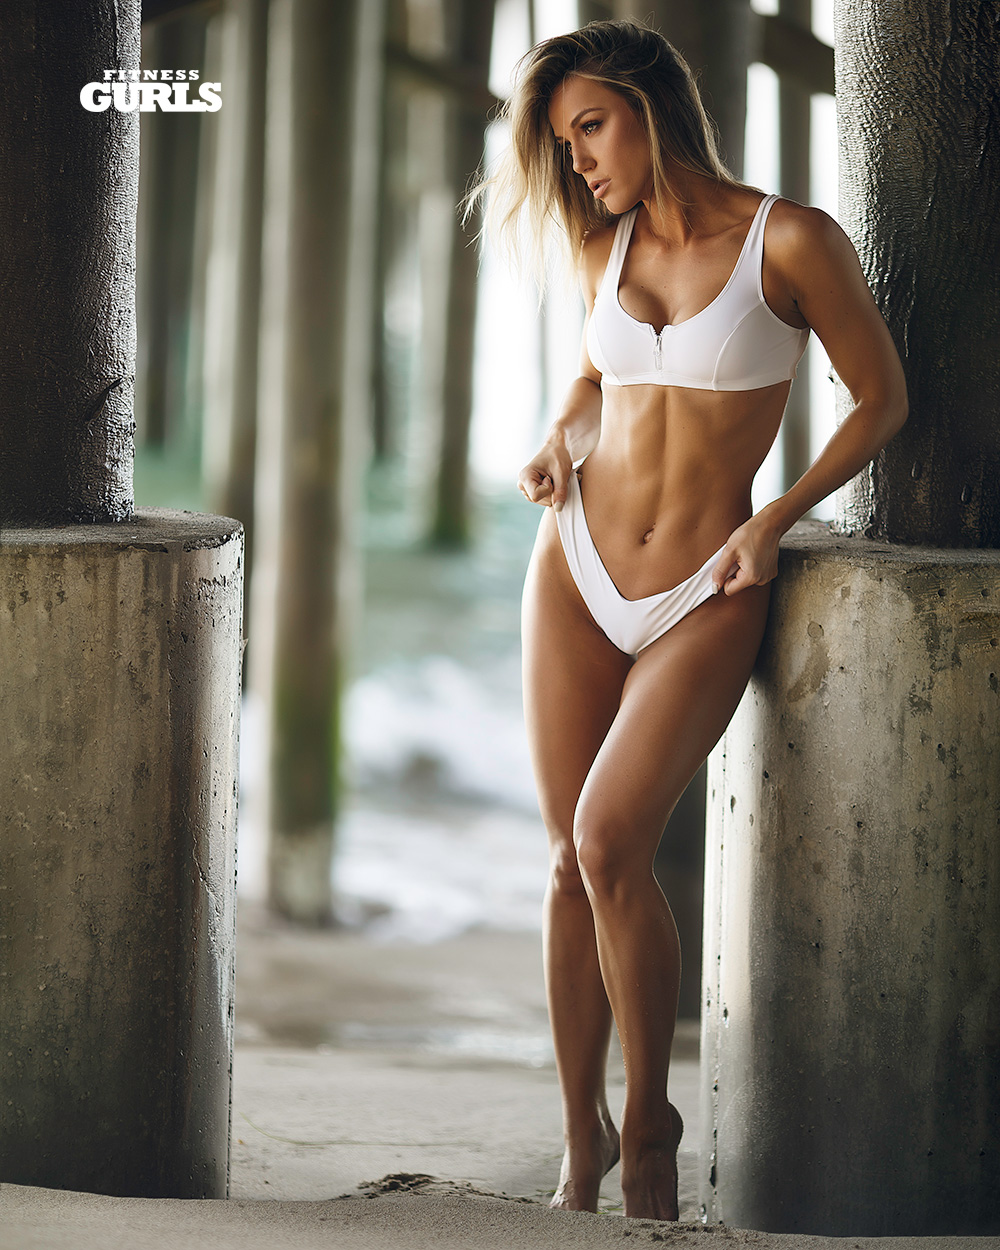 Tawna Eubanks McCoy Swimsuit Issue. Fitness Gurls Swimsuit Issue. Buy the  Digital Version: http://bit.ly/BuyFGSwim / Buy the Print Version: ...